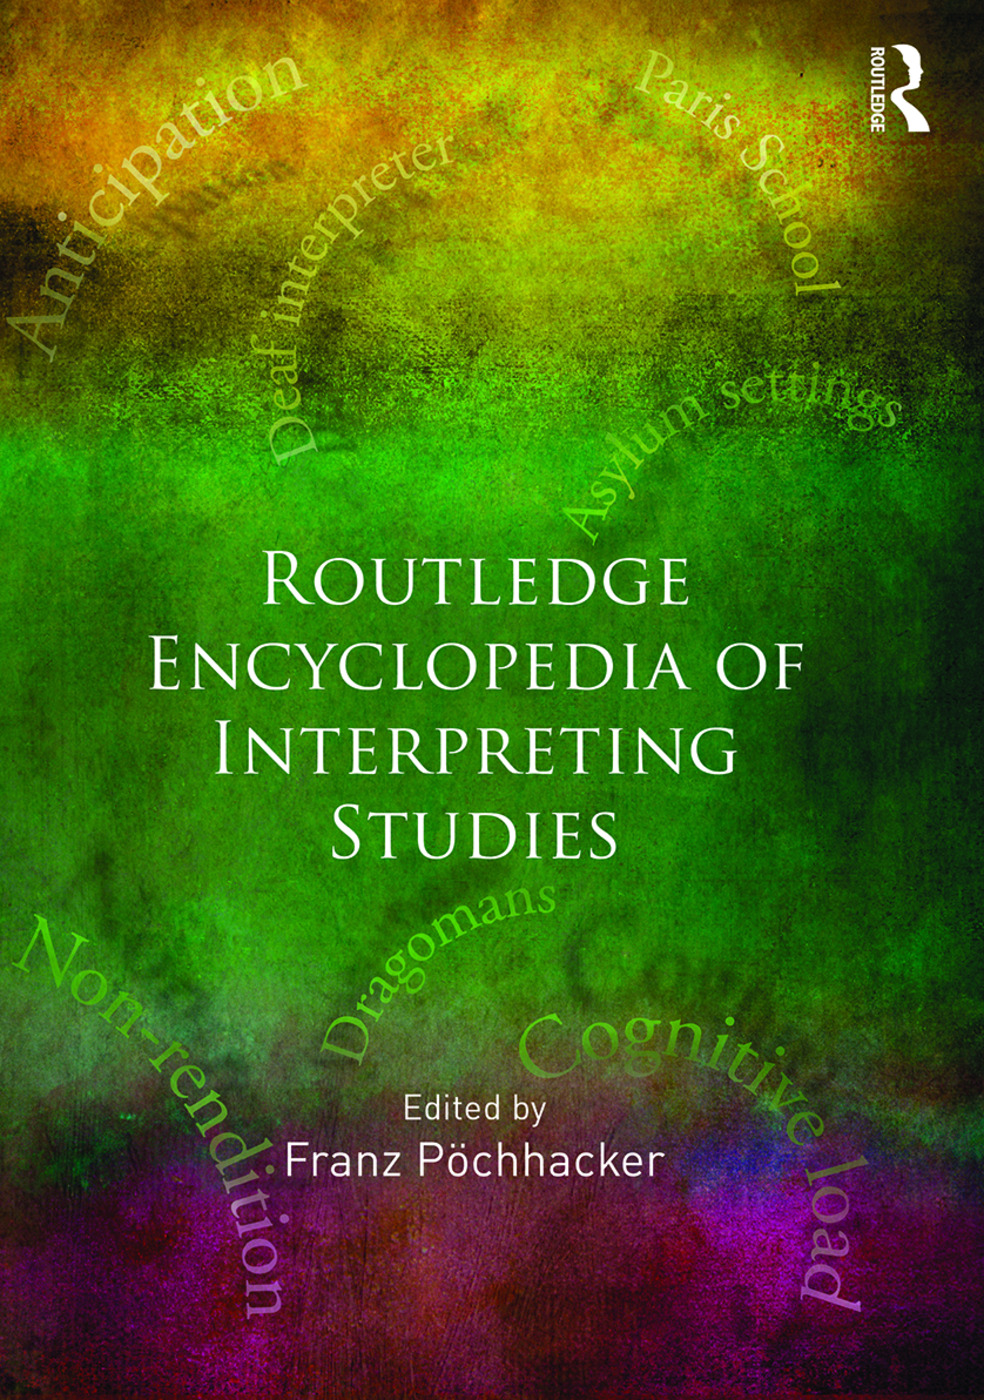 Routledge Encyclopedia of Interpreting Studies: 1st Edition (Hardback) book cover